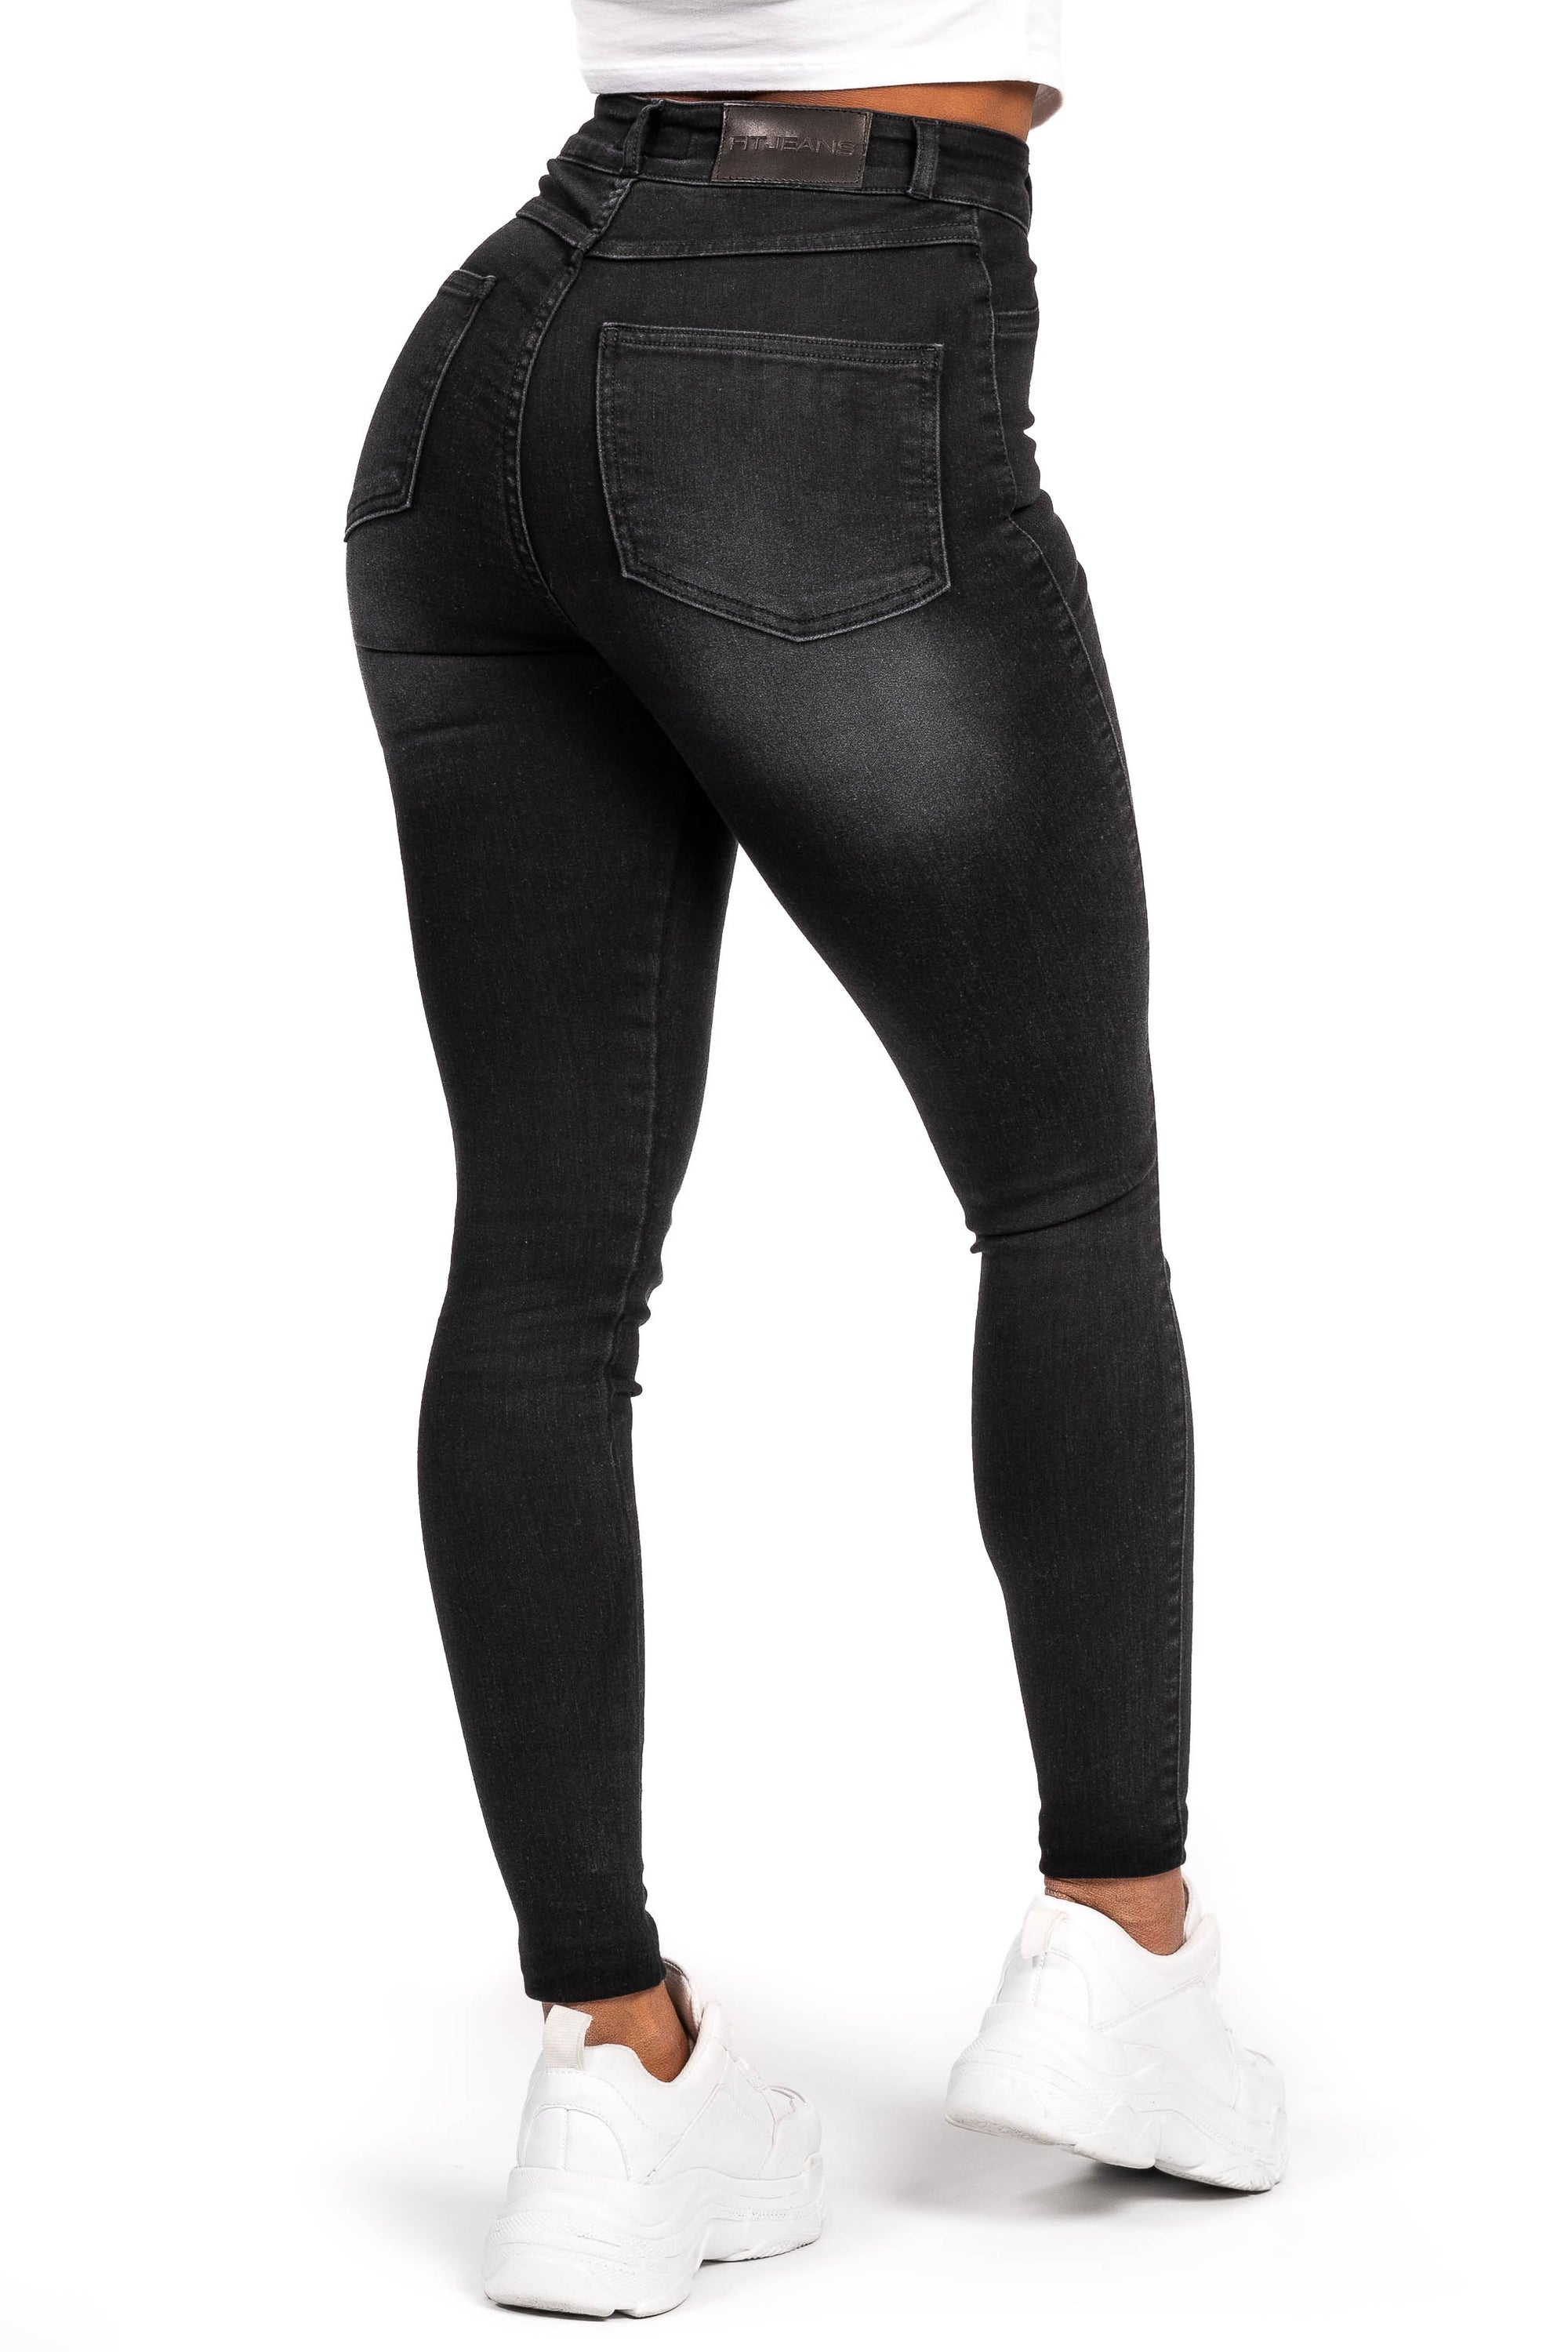 Womens Traditional High Waisted Fitjeans - Shaded Black